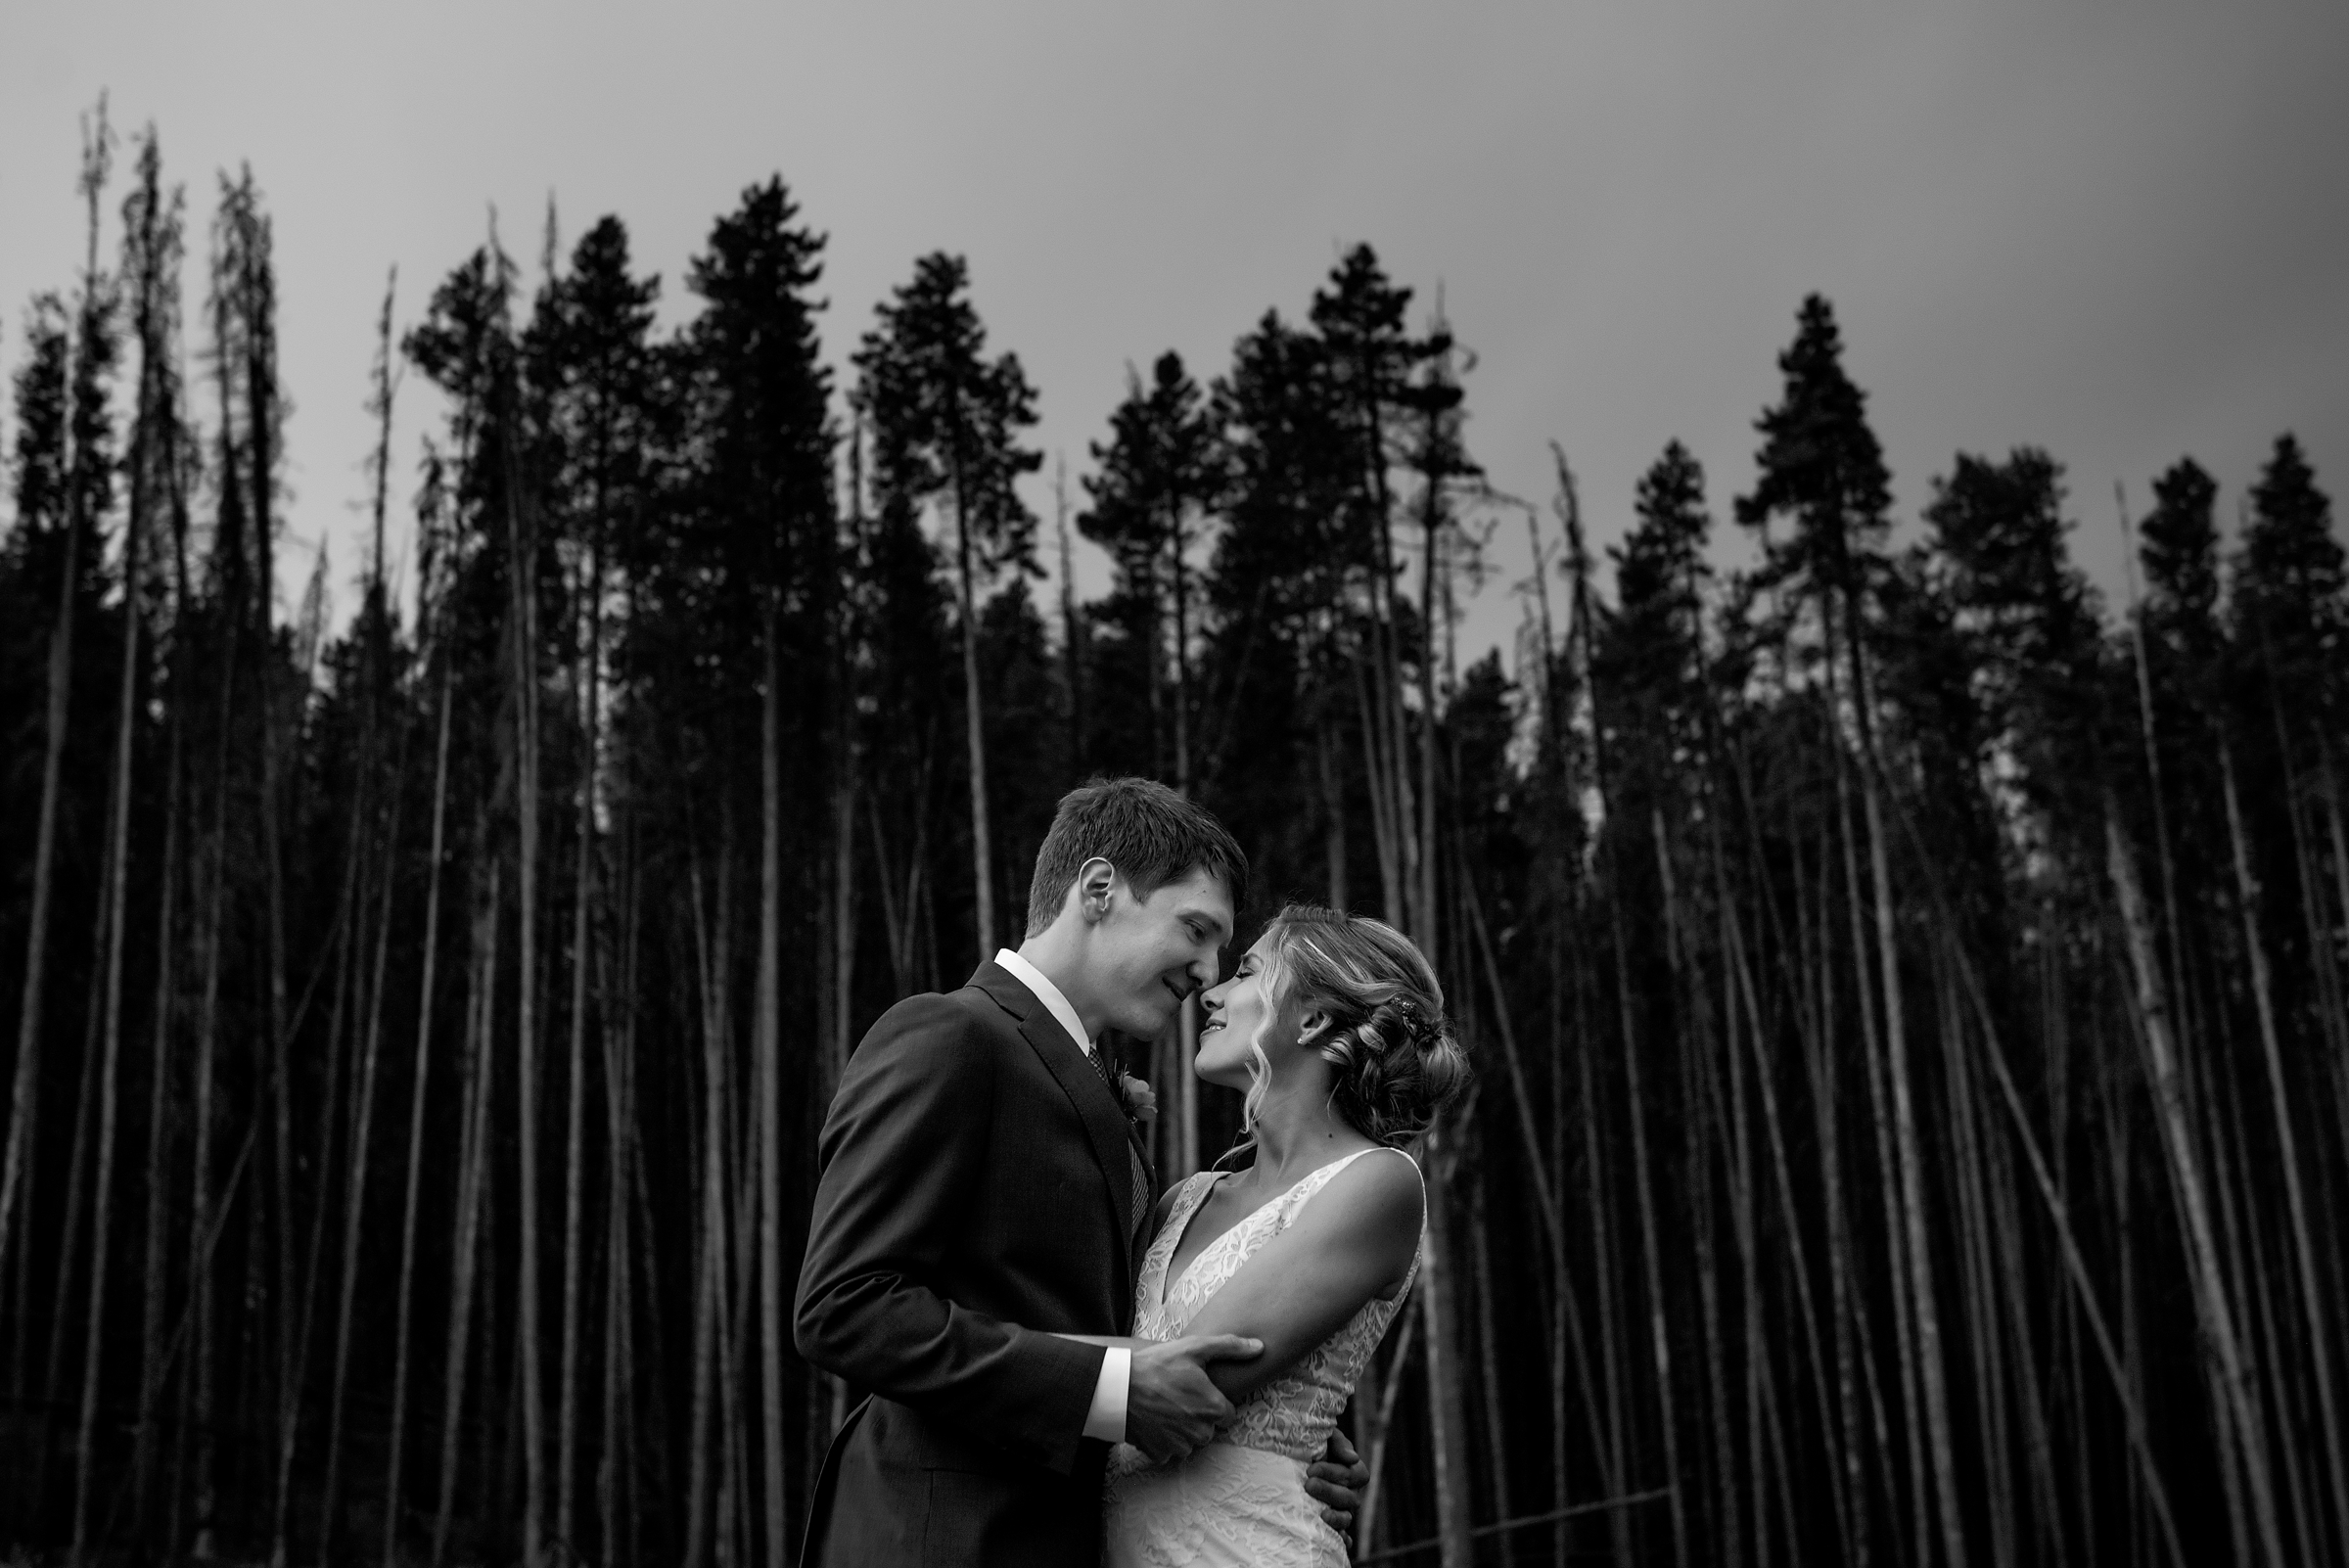 Couple embrace against forest backdrop - photo by Morgan Lynn Photography